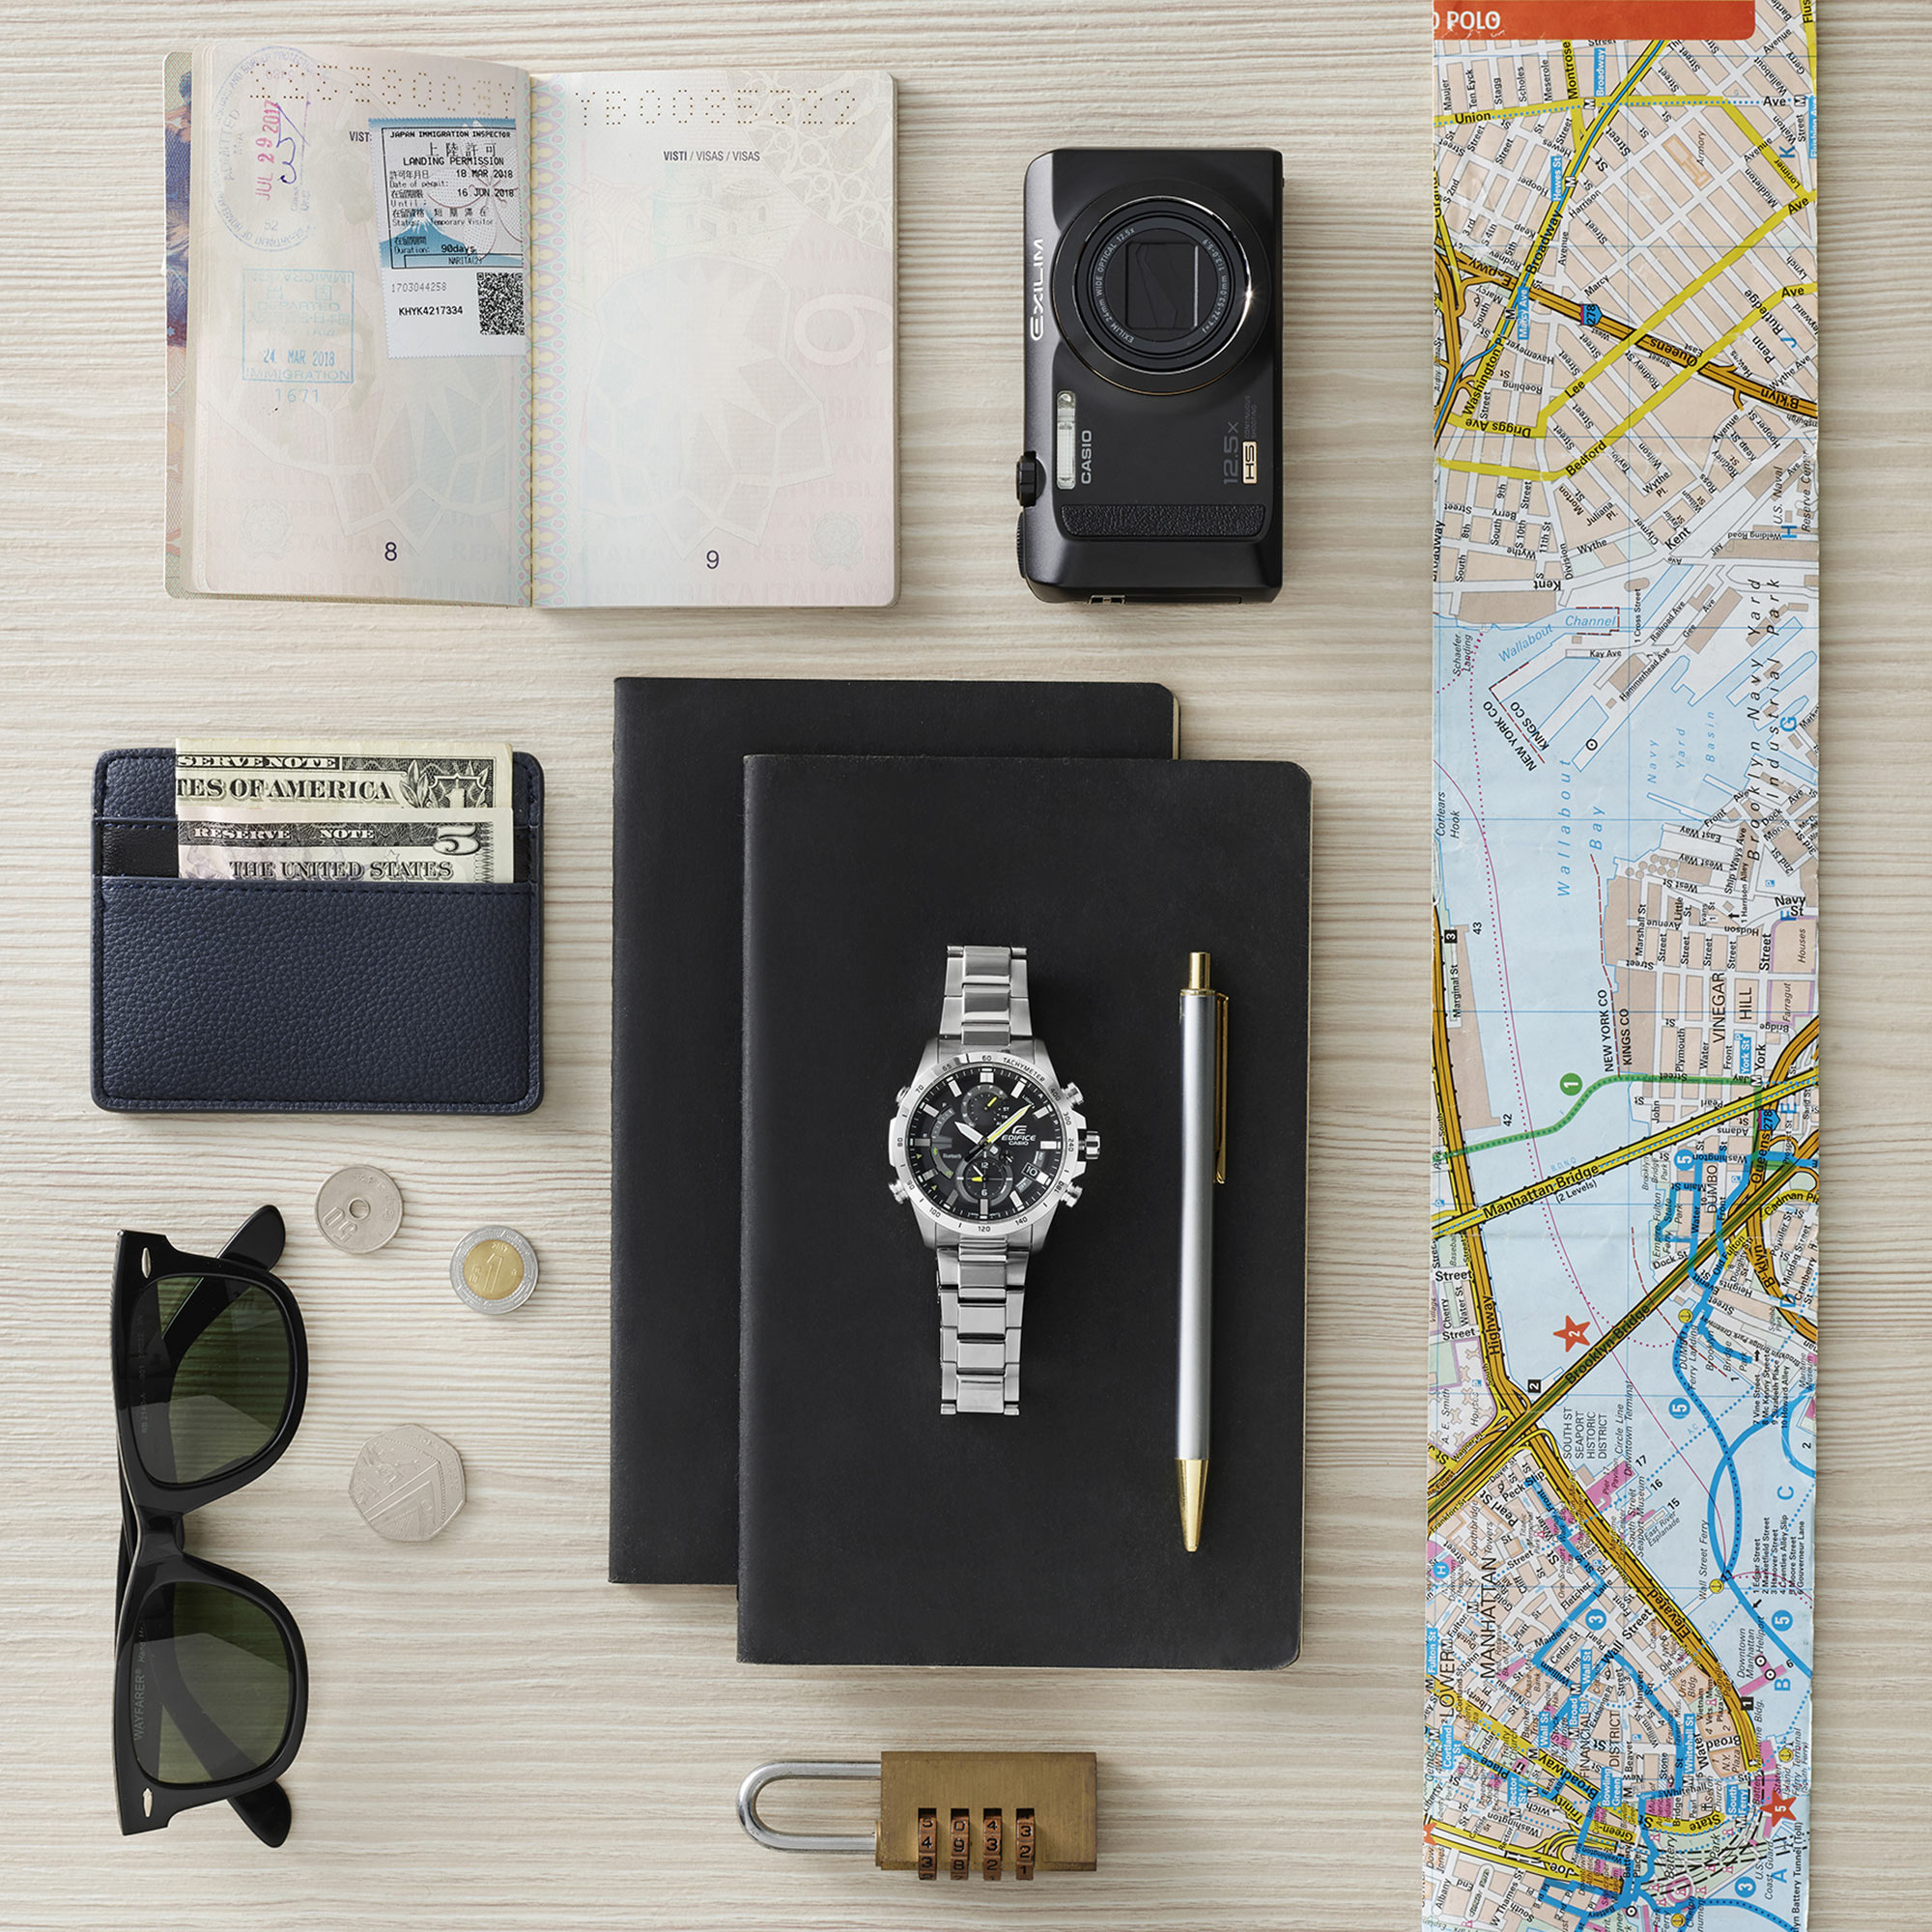 Man Map Glasses Coins Pen Locker Still Life Shot for Casio by Fotografando